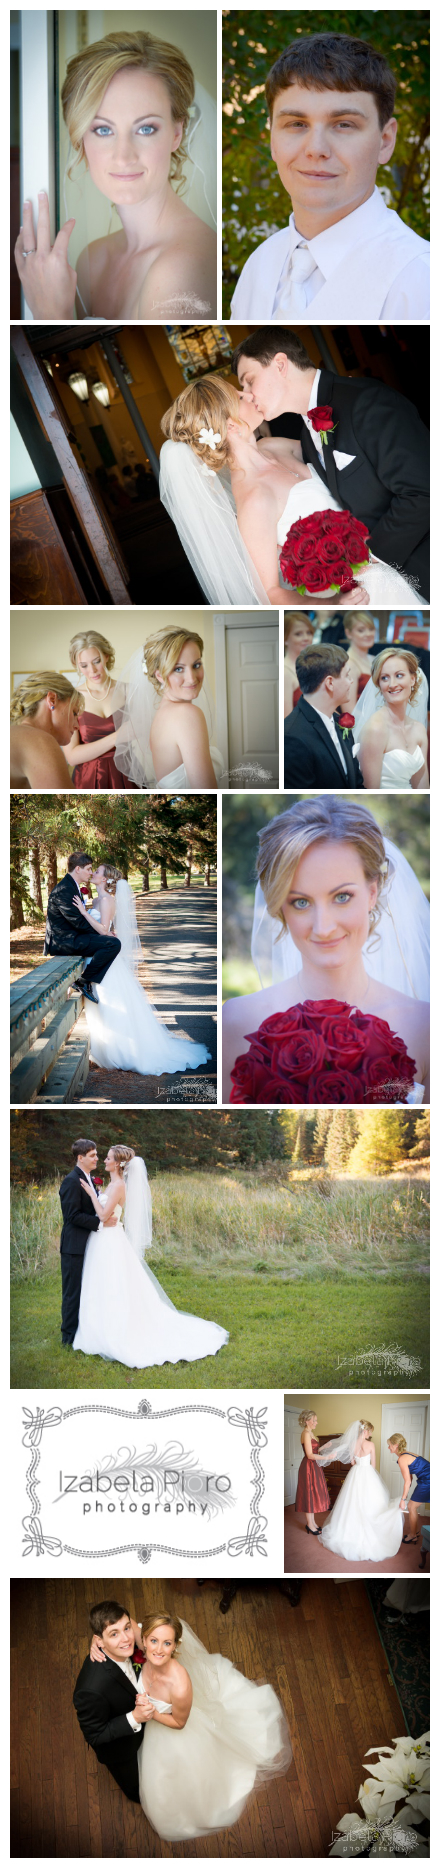 Drew+Michael got married in Thunder Bay, Ontario and held their reception at The White Fox Inn